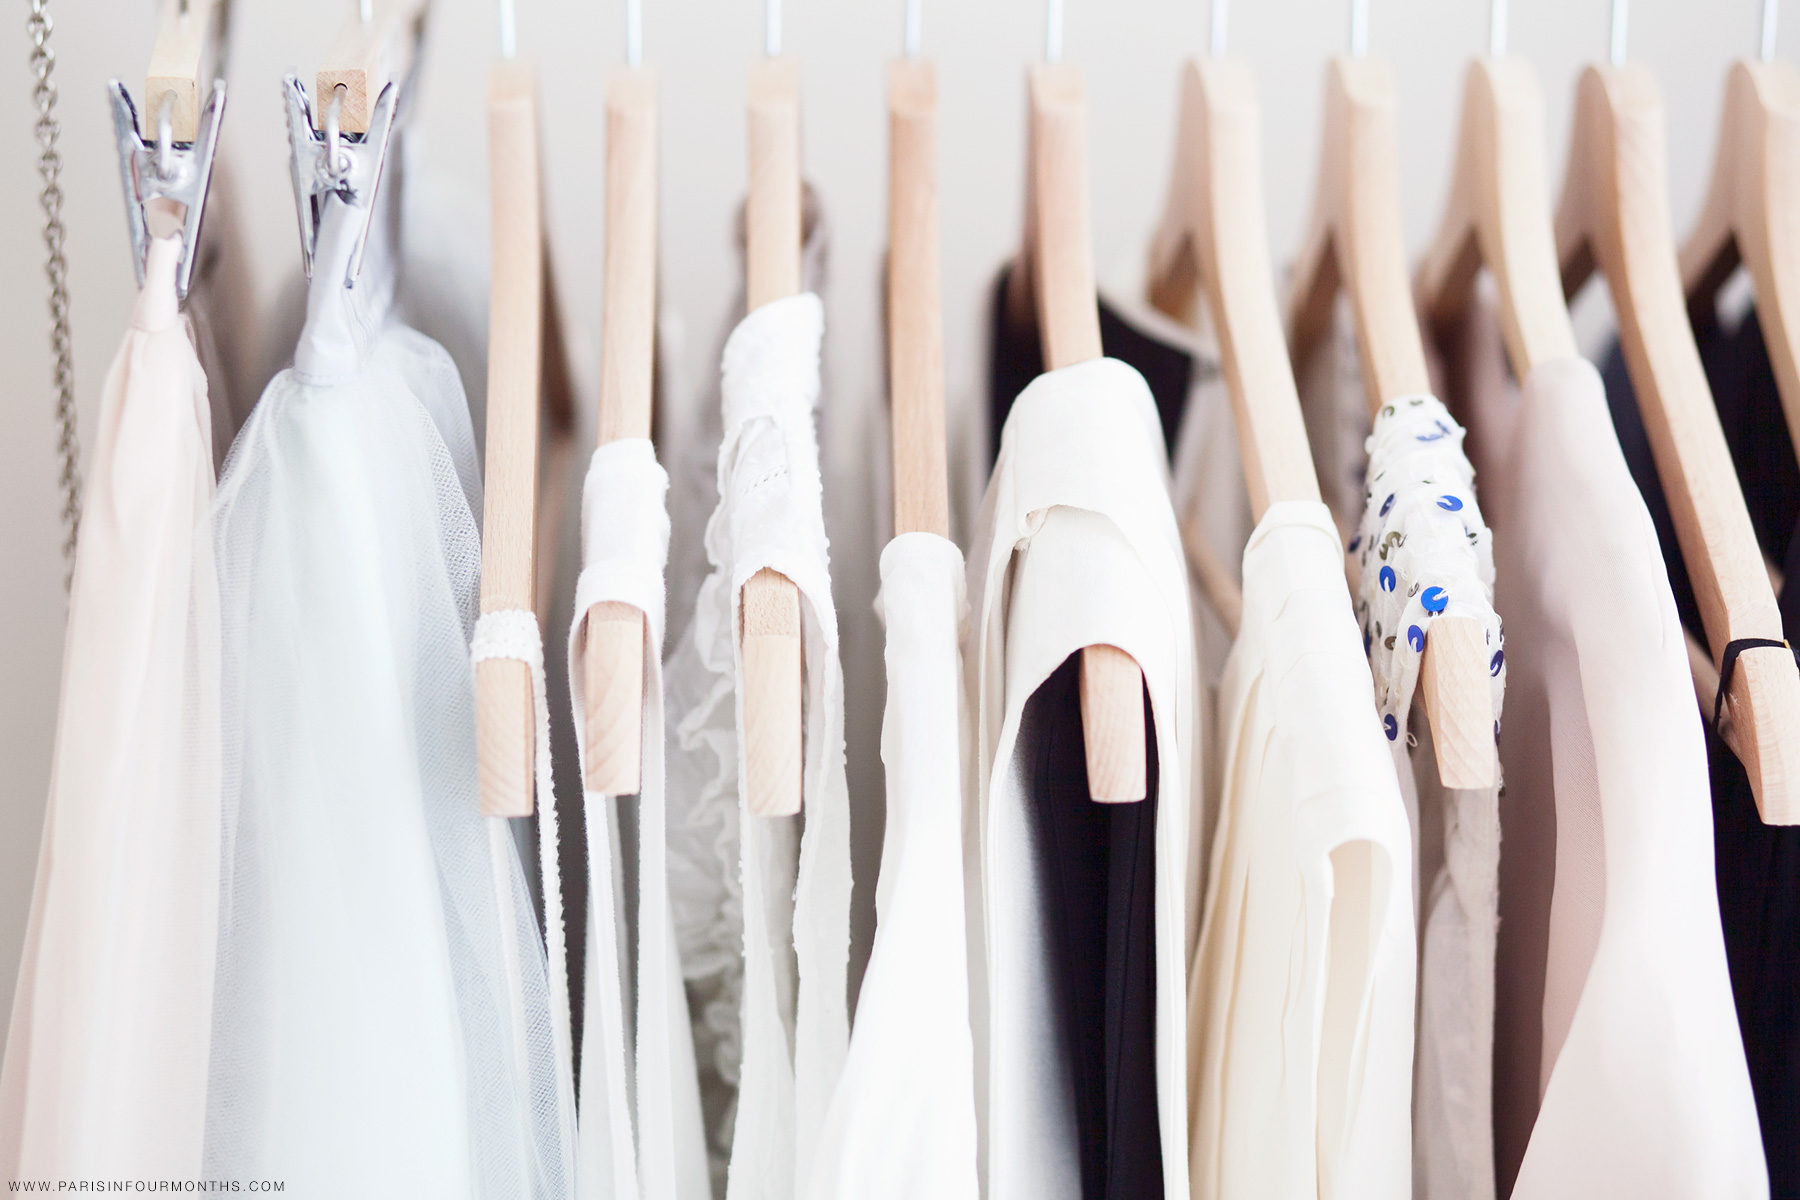 Details at home by Carin Olsson (Paris in Four Months)